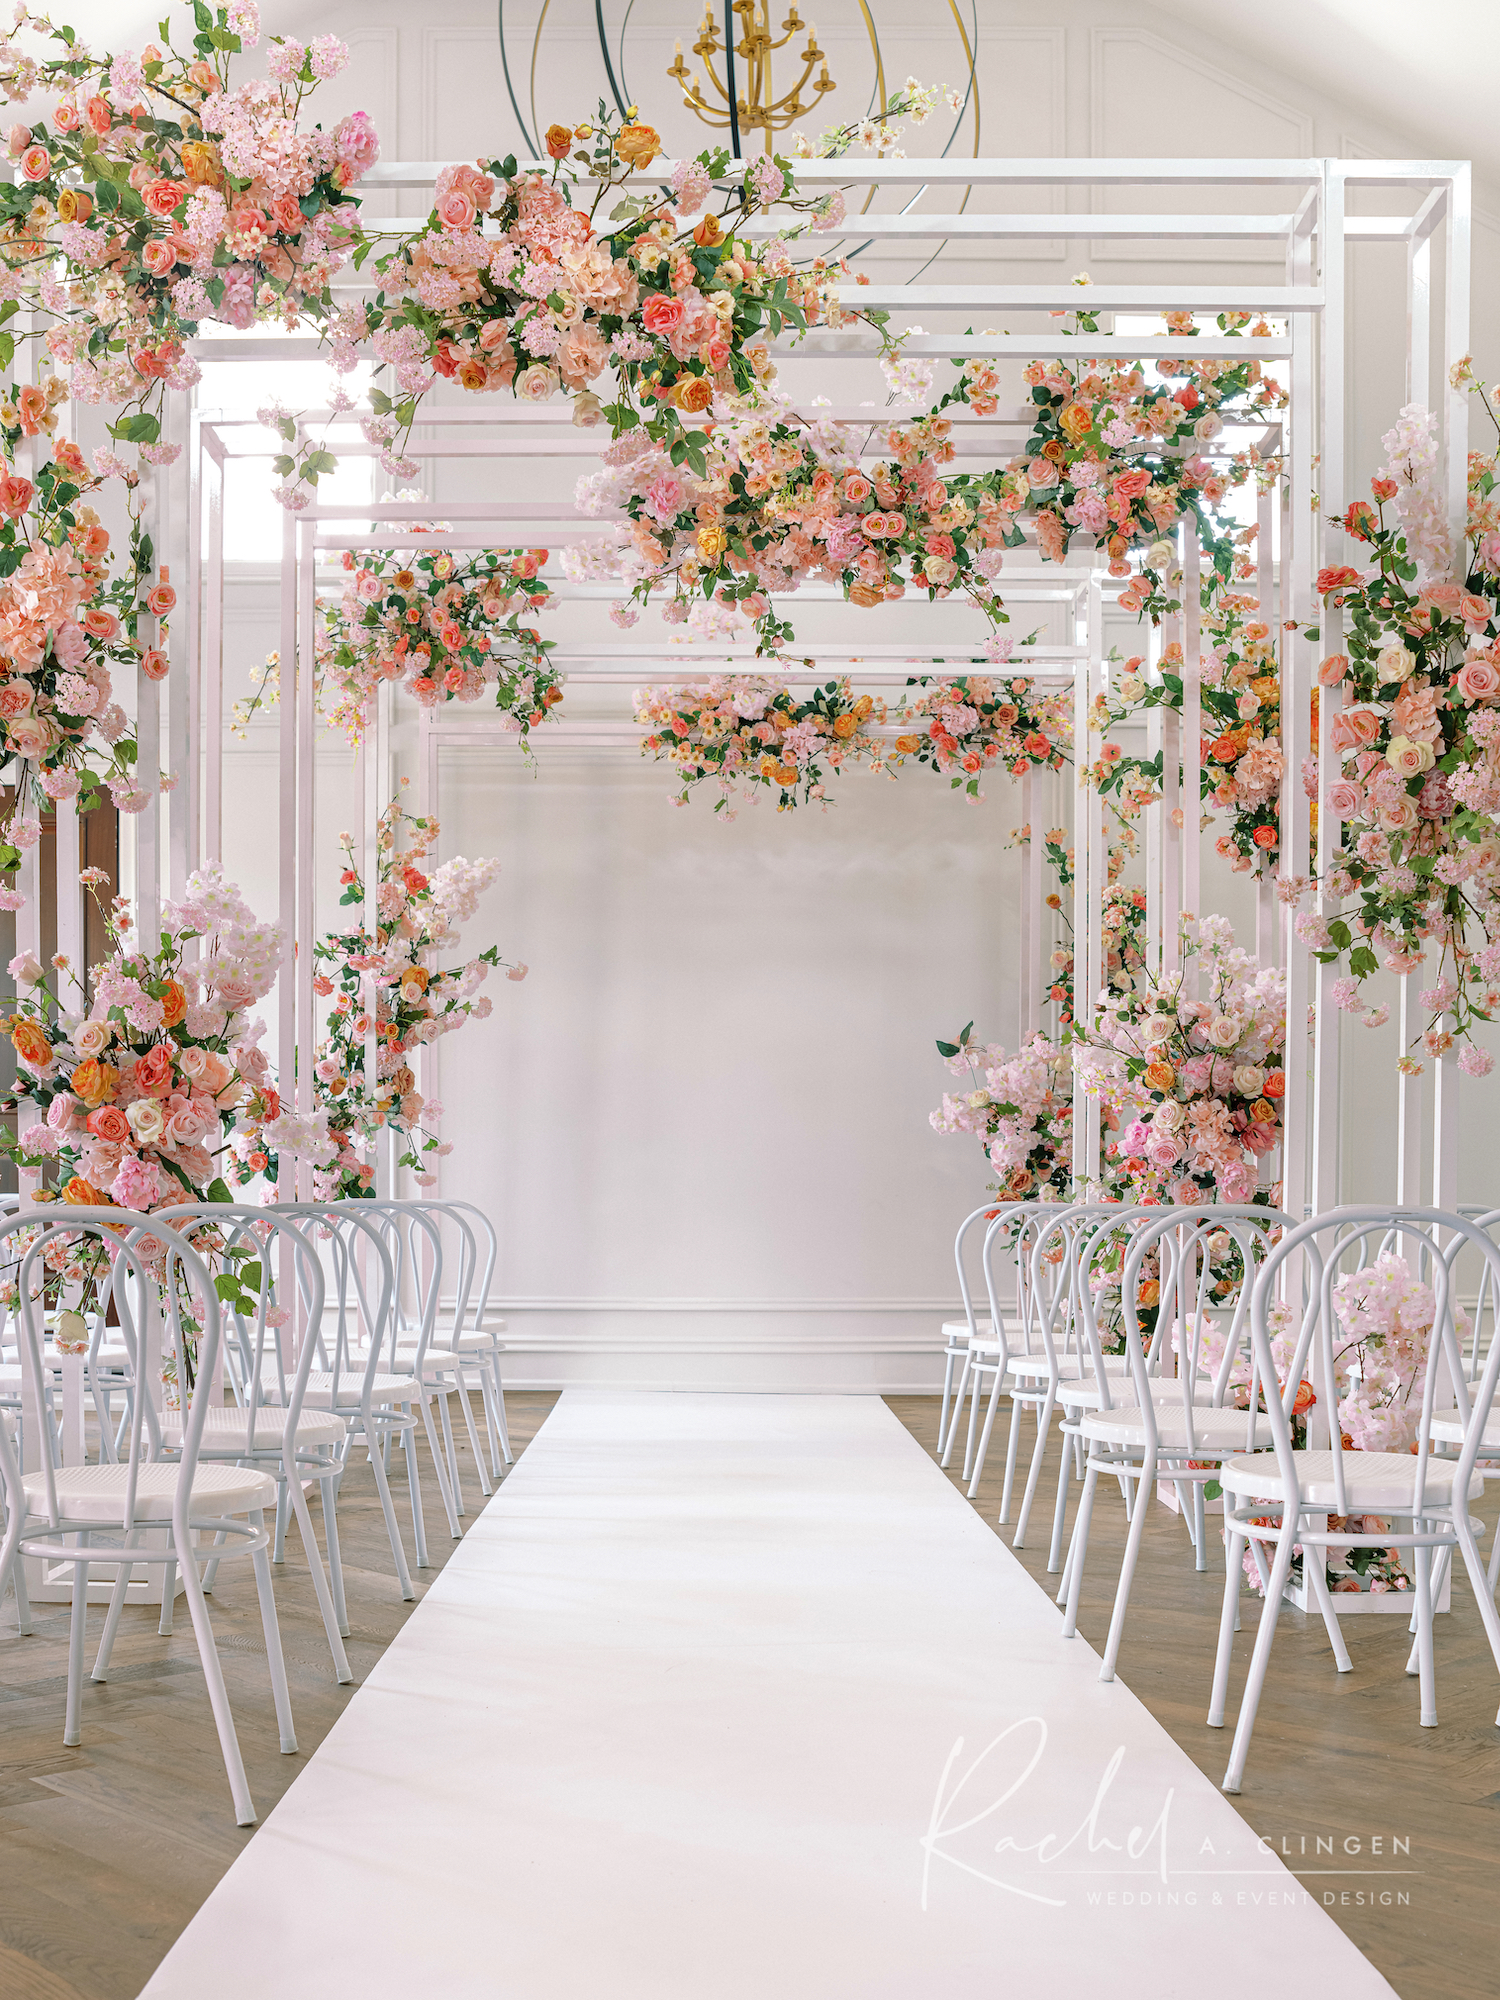 luxury wedding decor toronto rachel a clingen